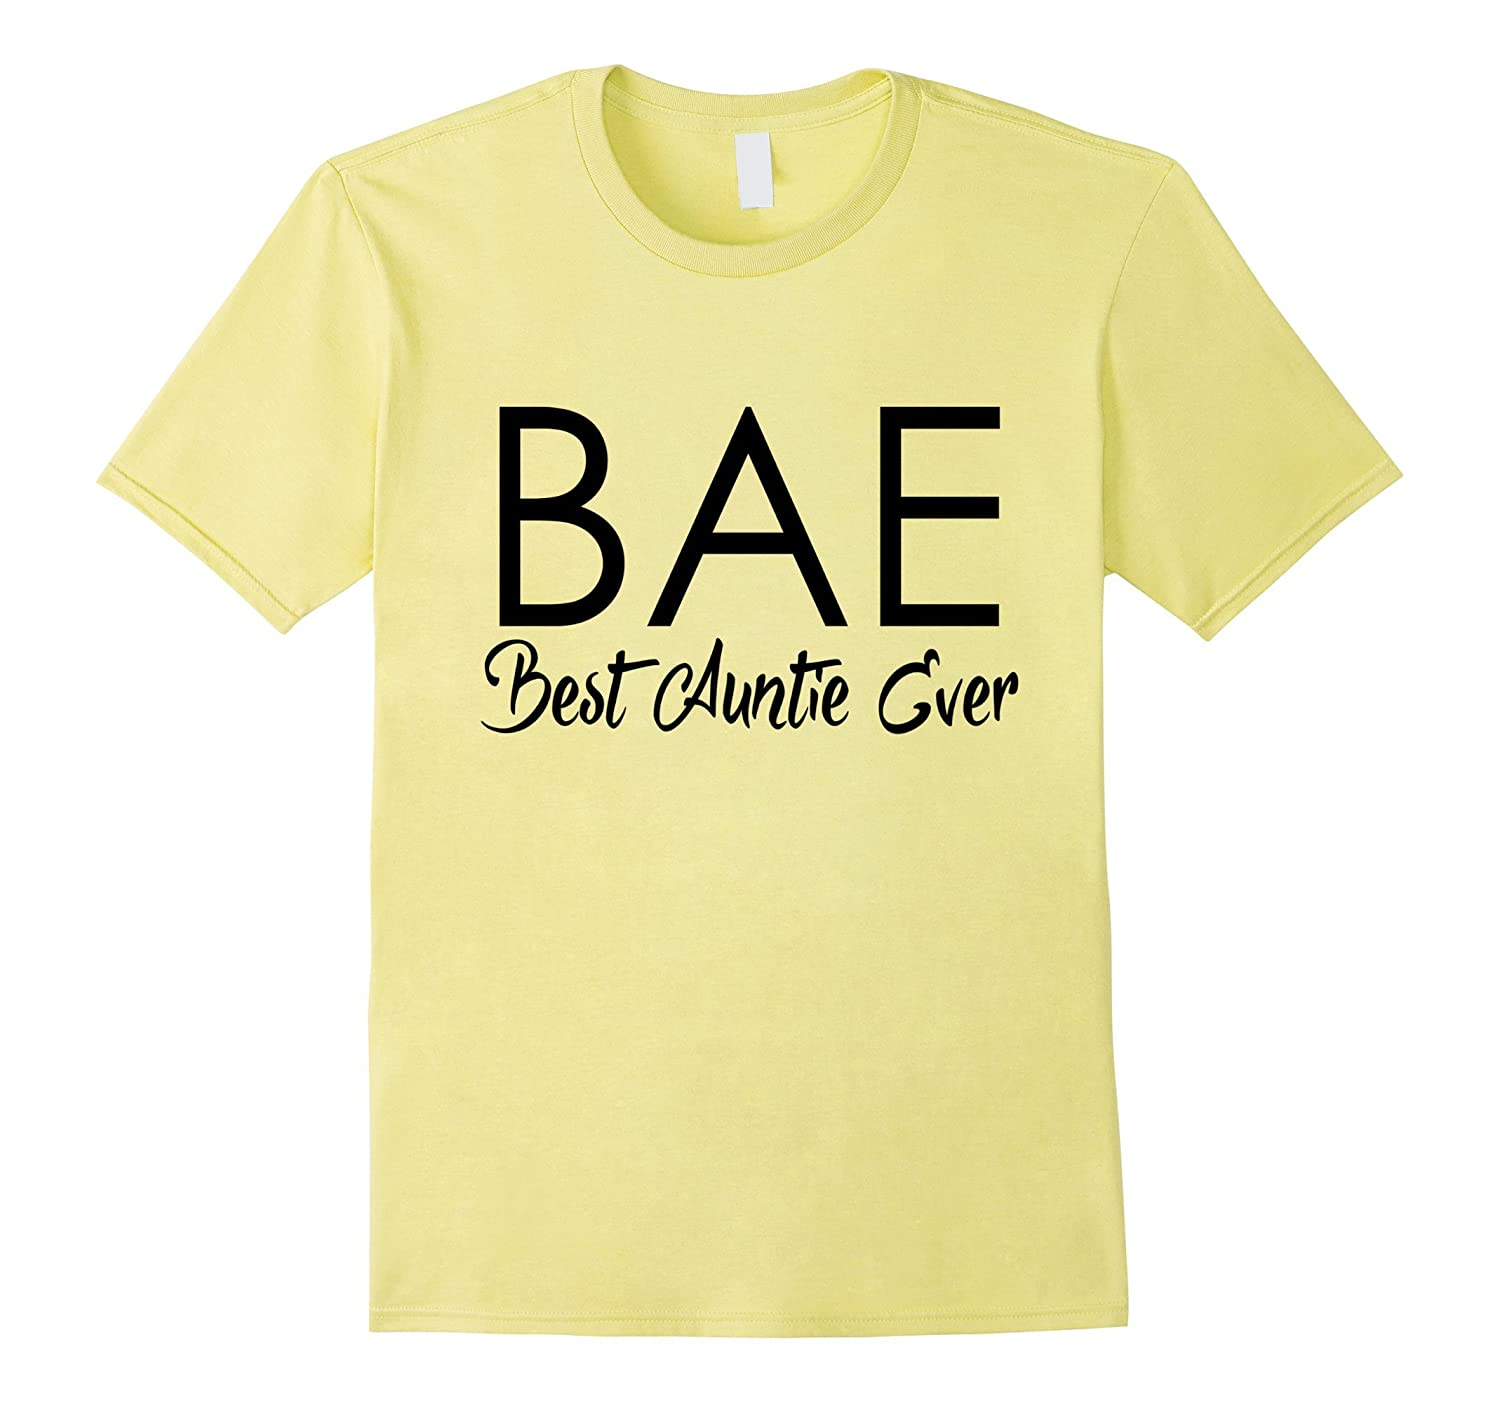 aa2767121 Best Auntie Ever T-shirt aunty tee shirt-CL – Colamaga